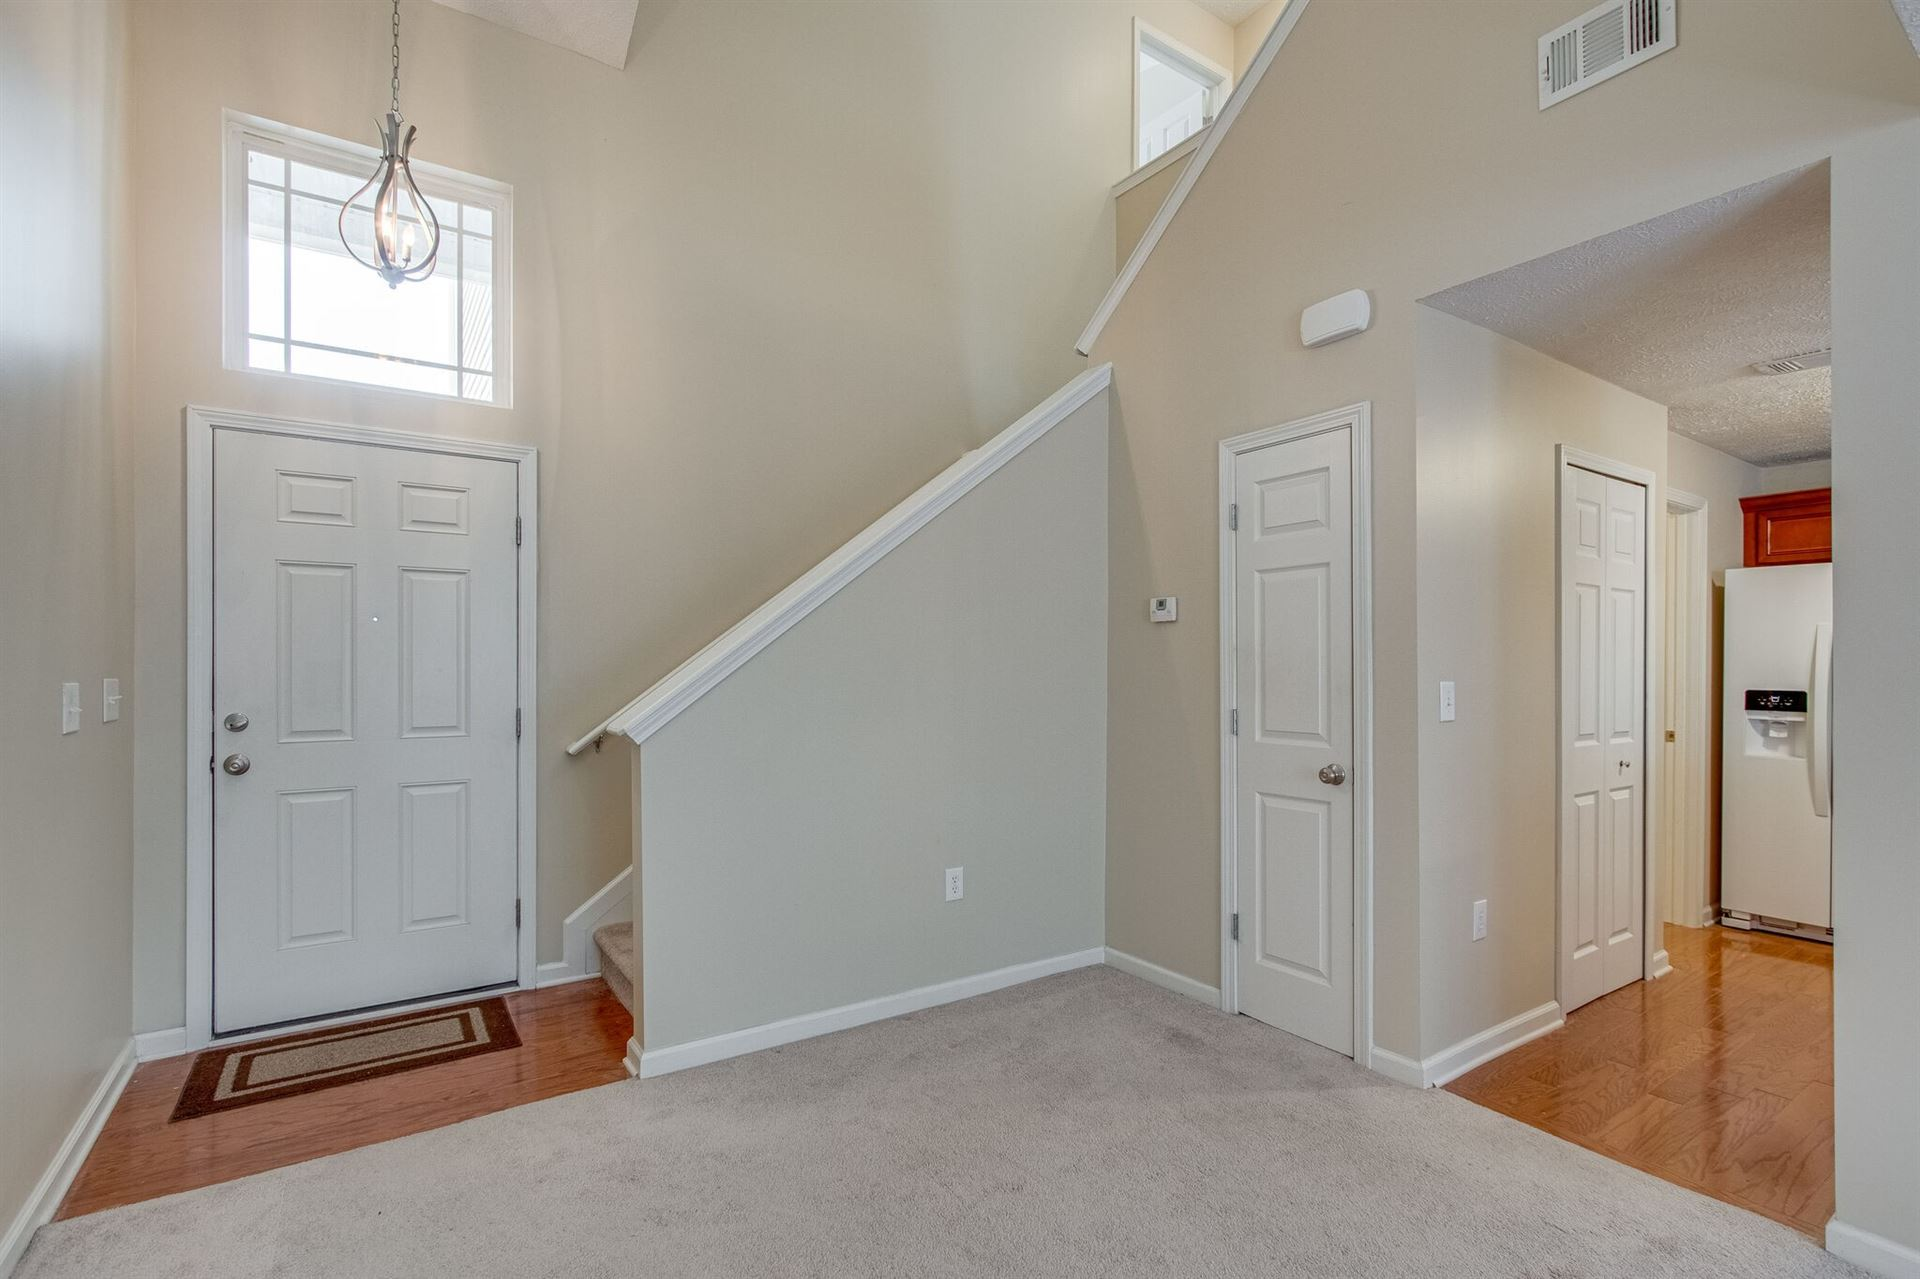 Photo of 1078 Somerset Springs Dr, Spring Hill, TN 37174 (MLS # 2299042)